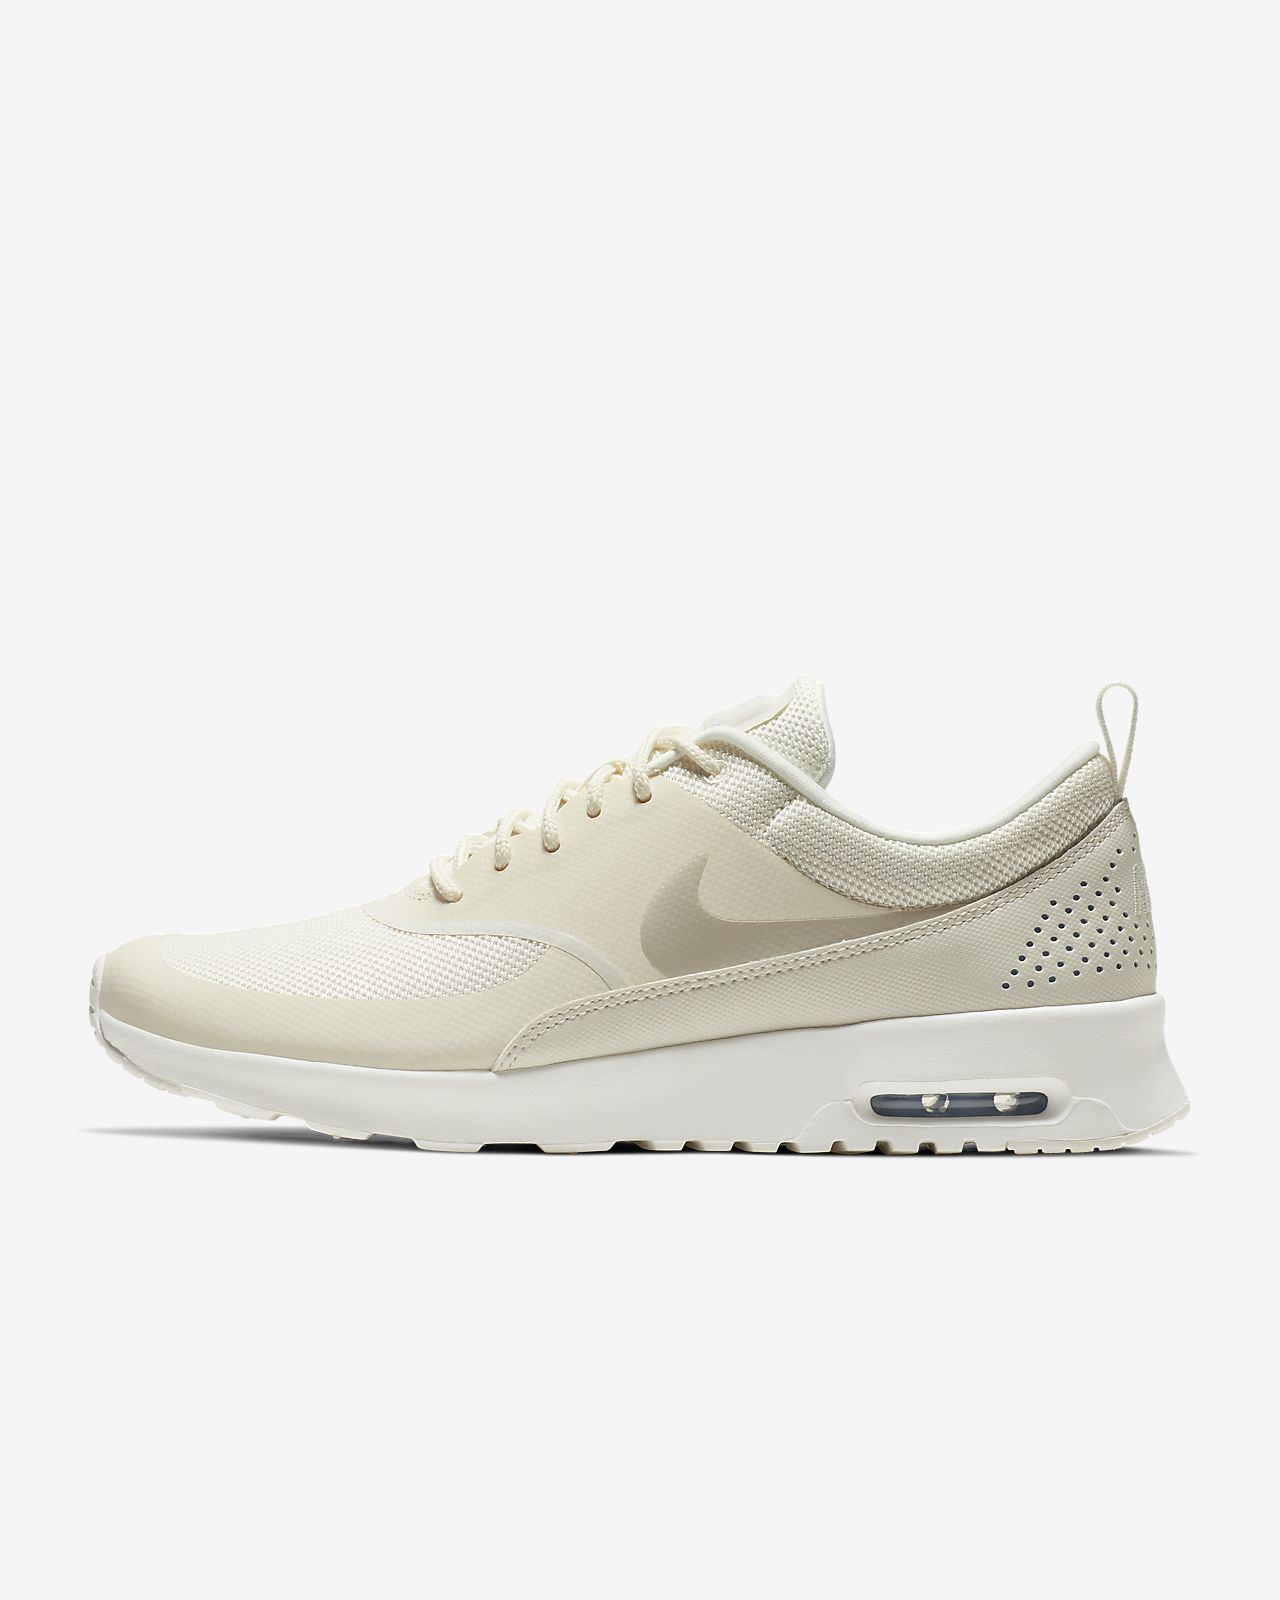 new products 23cba 75d68 Women s Shoe. Nike Air Max Thea